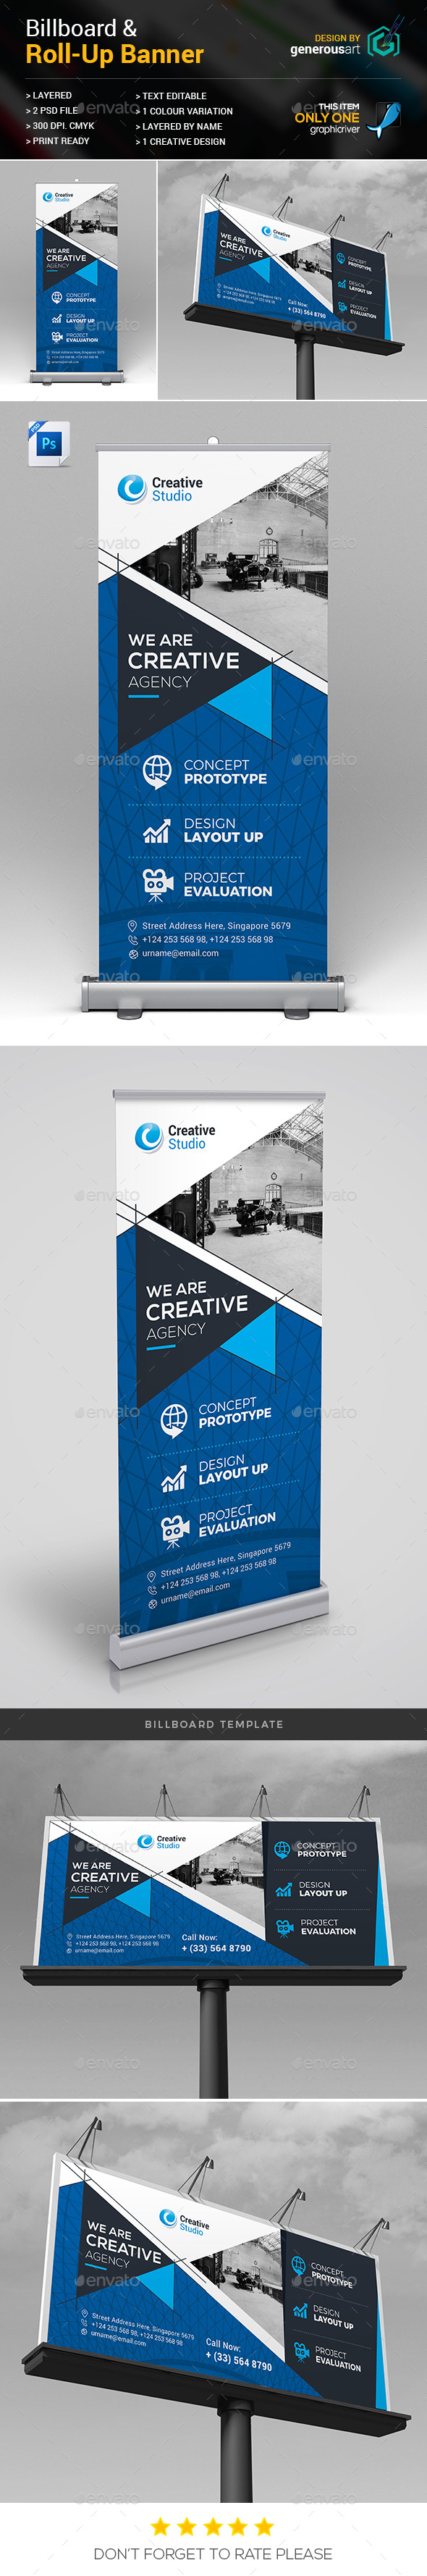 Billboard & Roll-Up Banner - Signage Print Templates